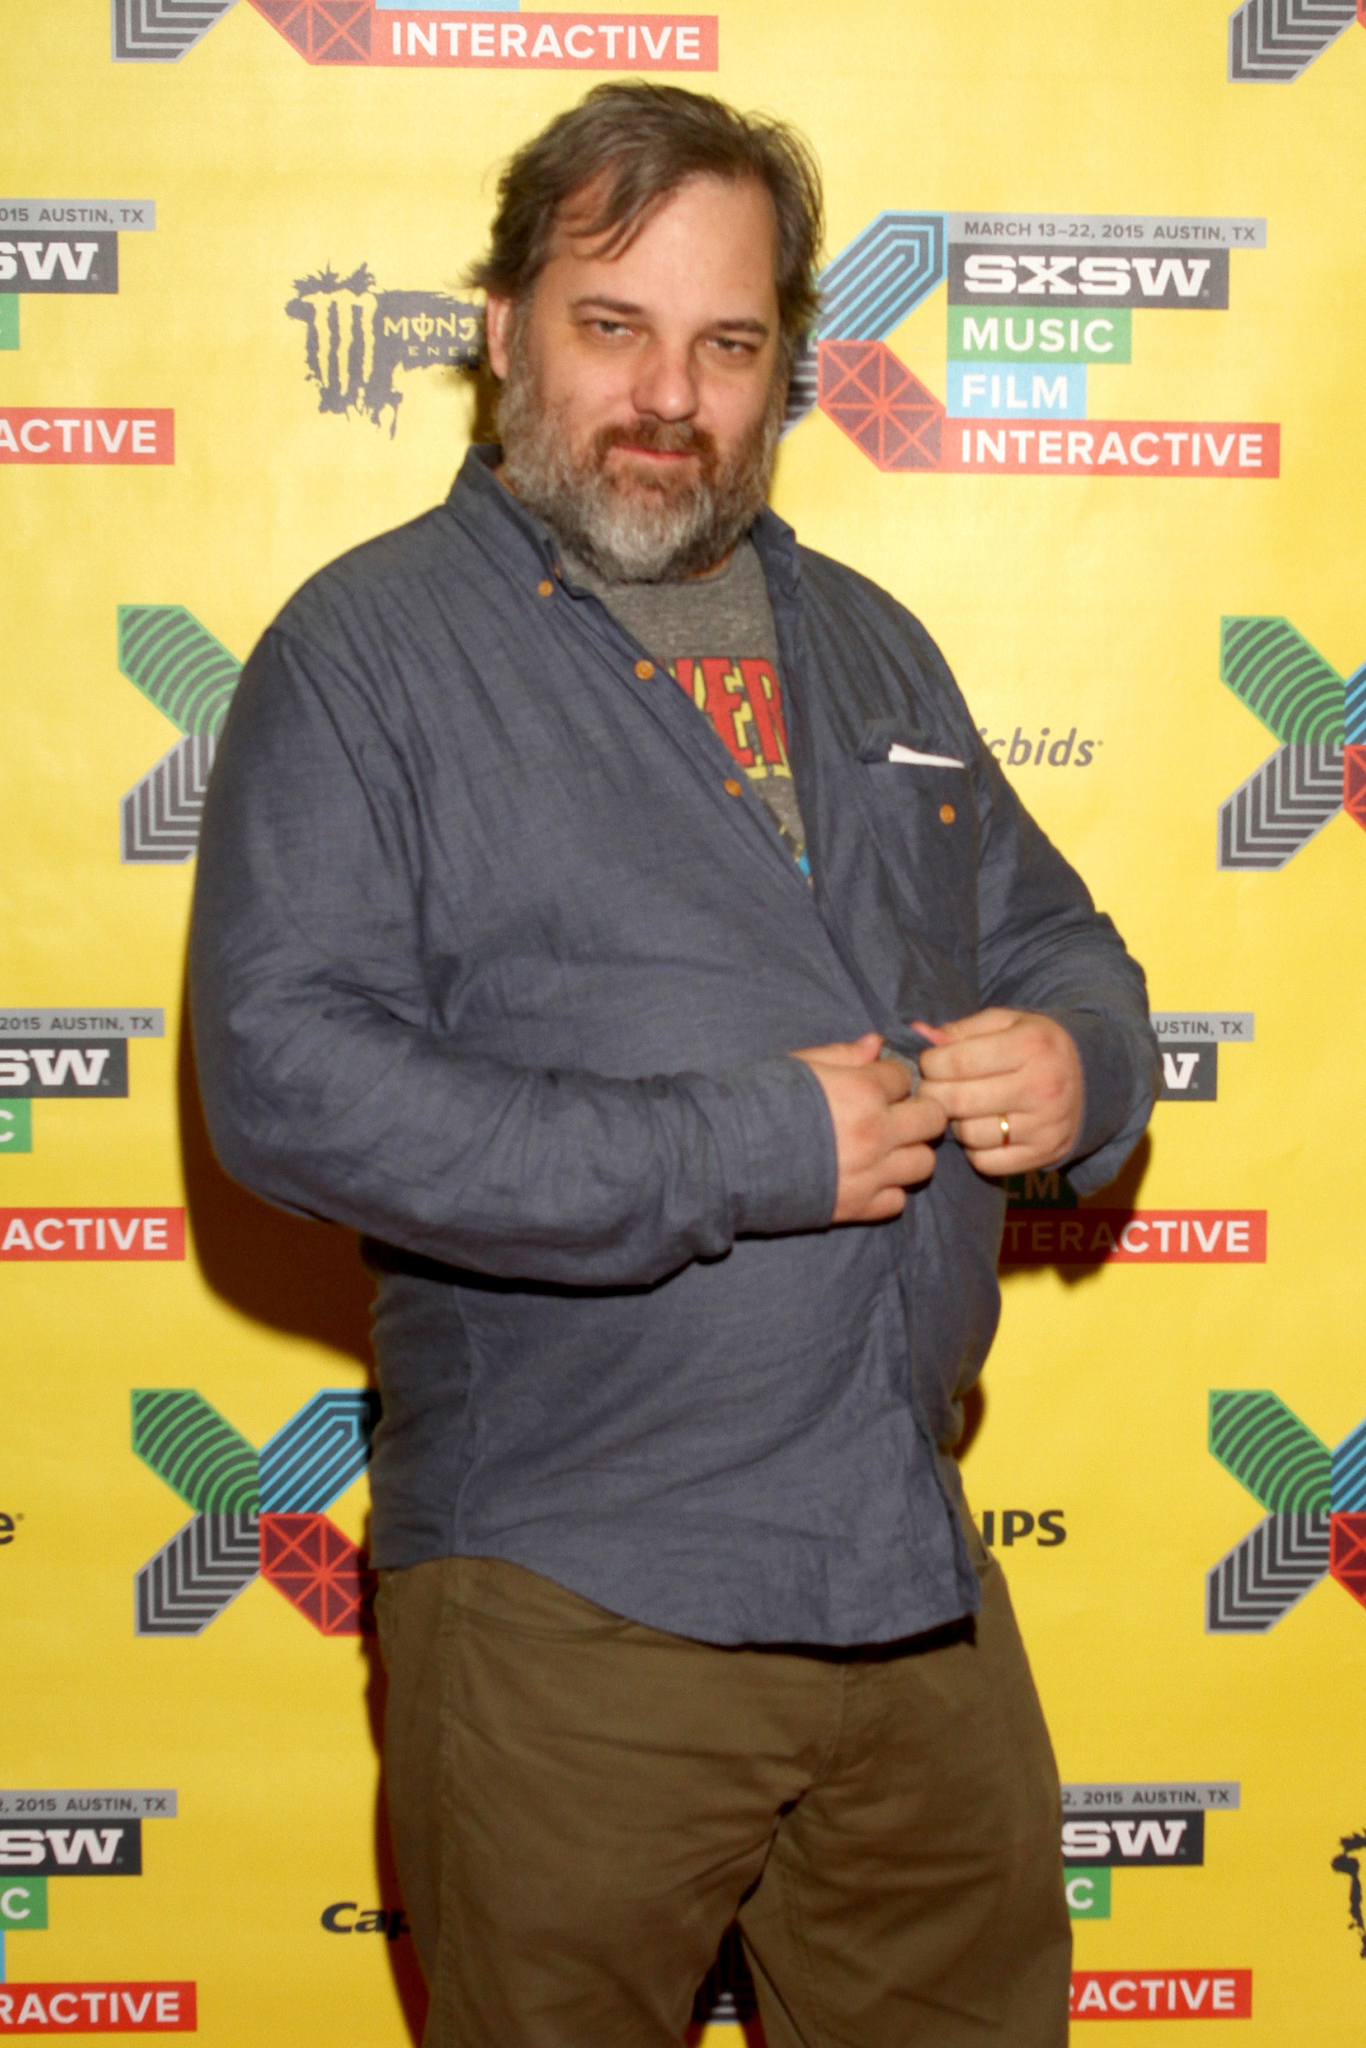 Dan Harmon at an event for Community (2009)